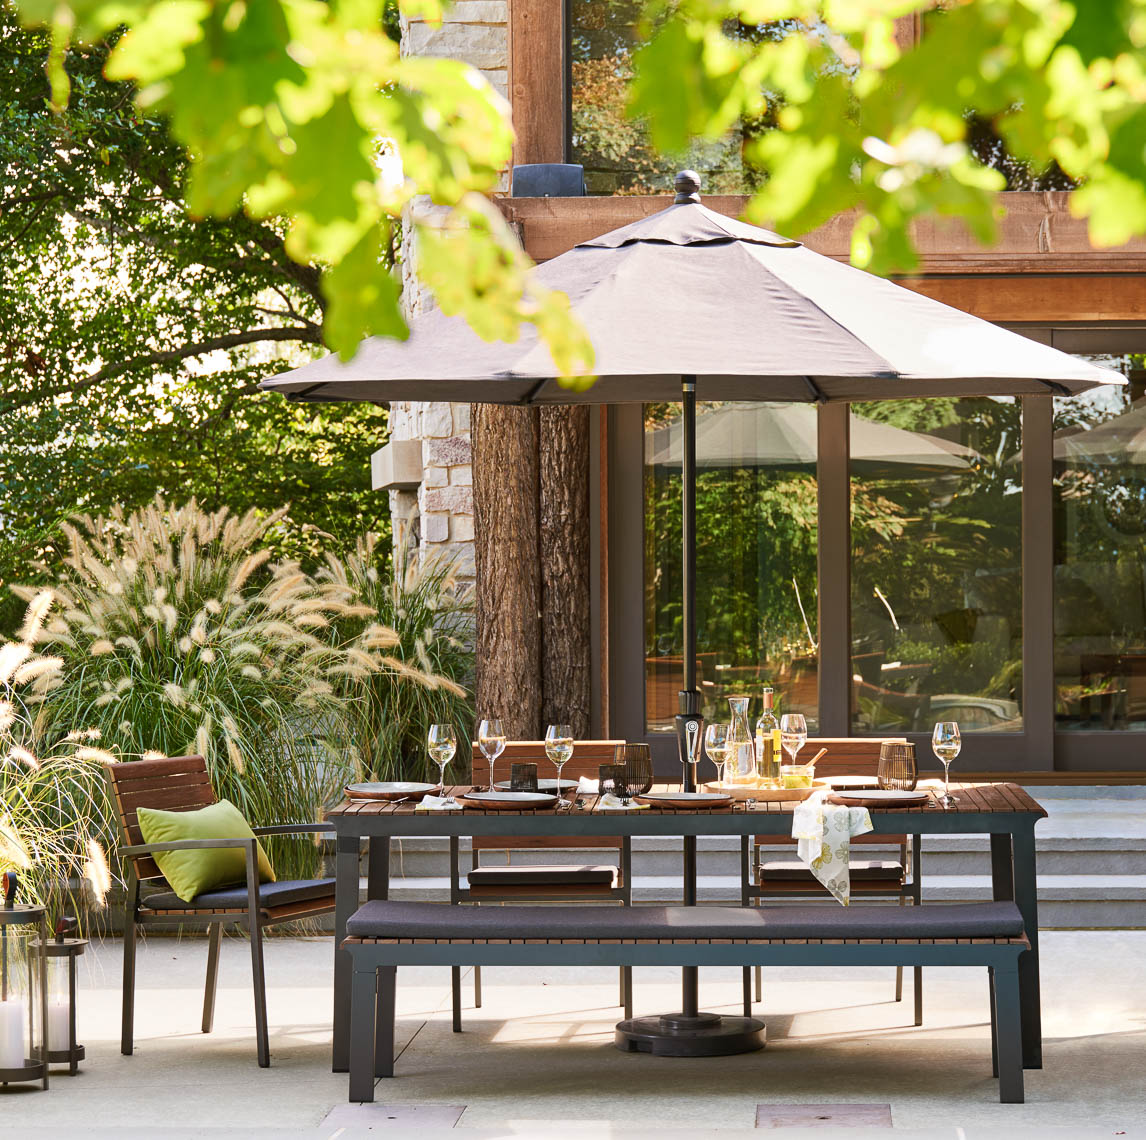 alec-hemer-photography-CB-outdoor-dining